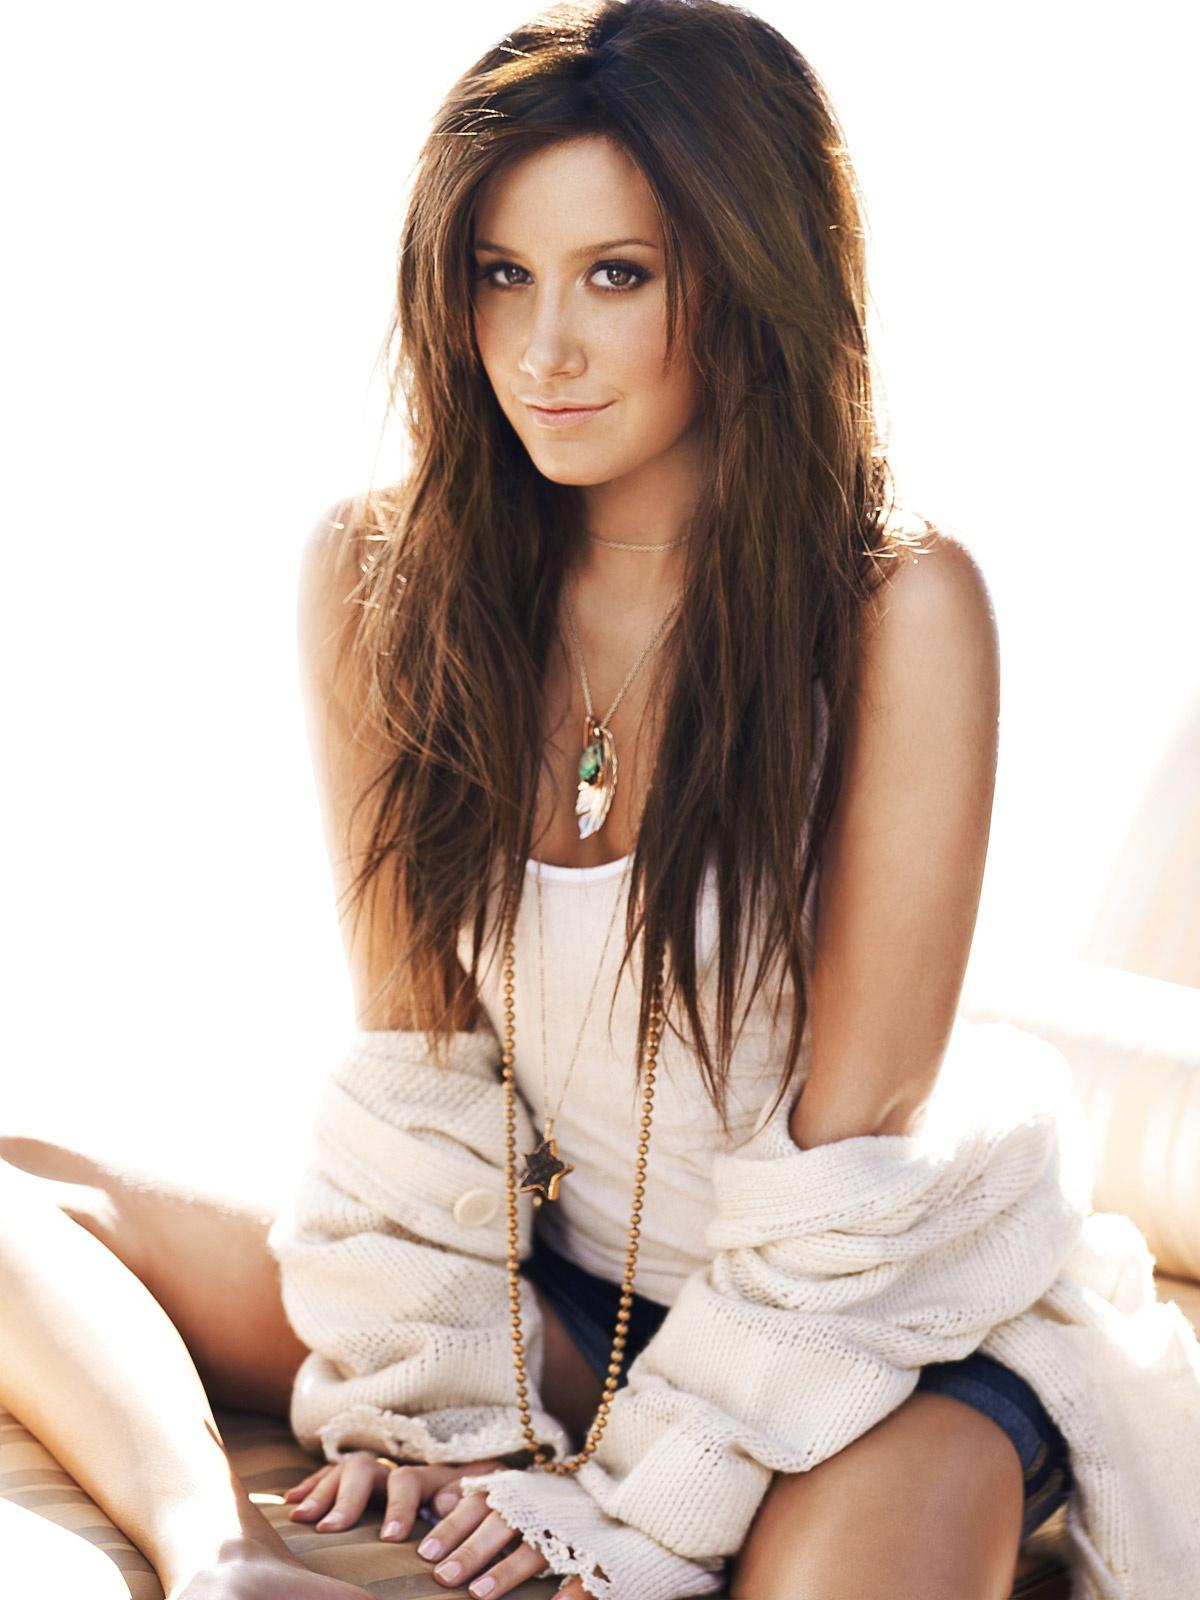 http://3.bp.blogspot.com/-EP1yE97r51c/UWrxJKsqaEI/AAAAAAAALrc/2AGgaVN8dQI/s1600/Ashley-tisdale-sitting-photoshoot.jpg